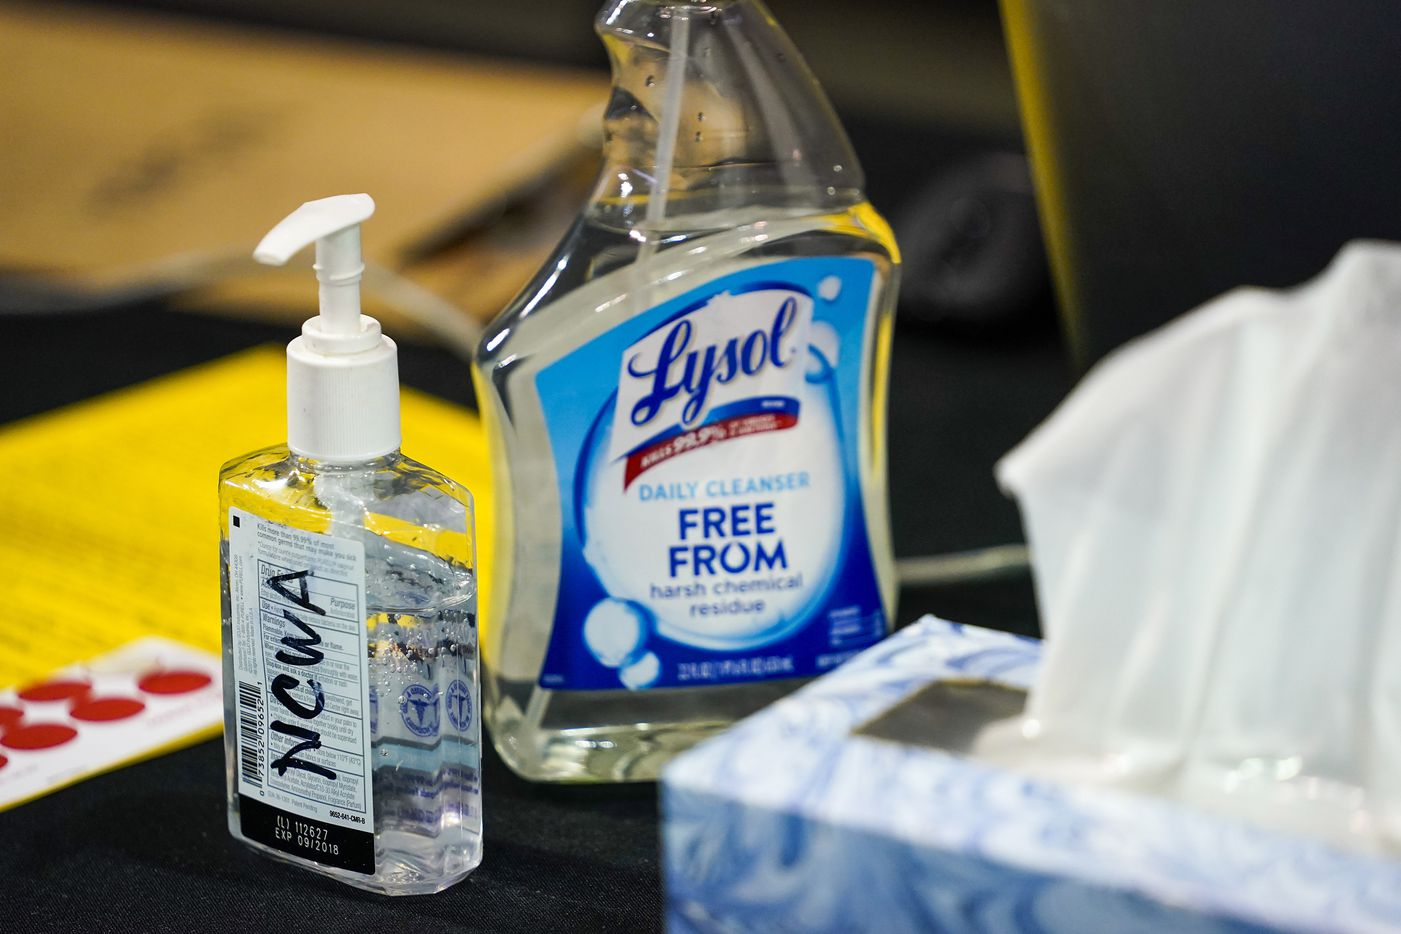 Bottles of hand sanitizer and disinfectant rest on a scorers table during the NCWA national championships at the Allen Events Center on Friday, March 13, 2020, in Allen, Texas..